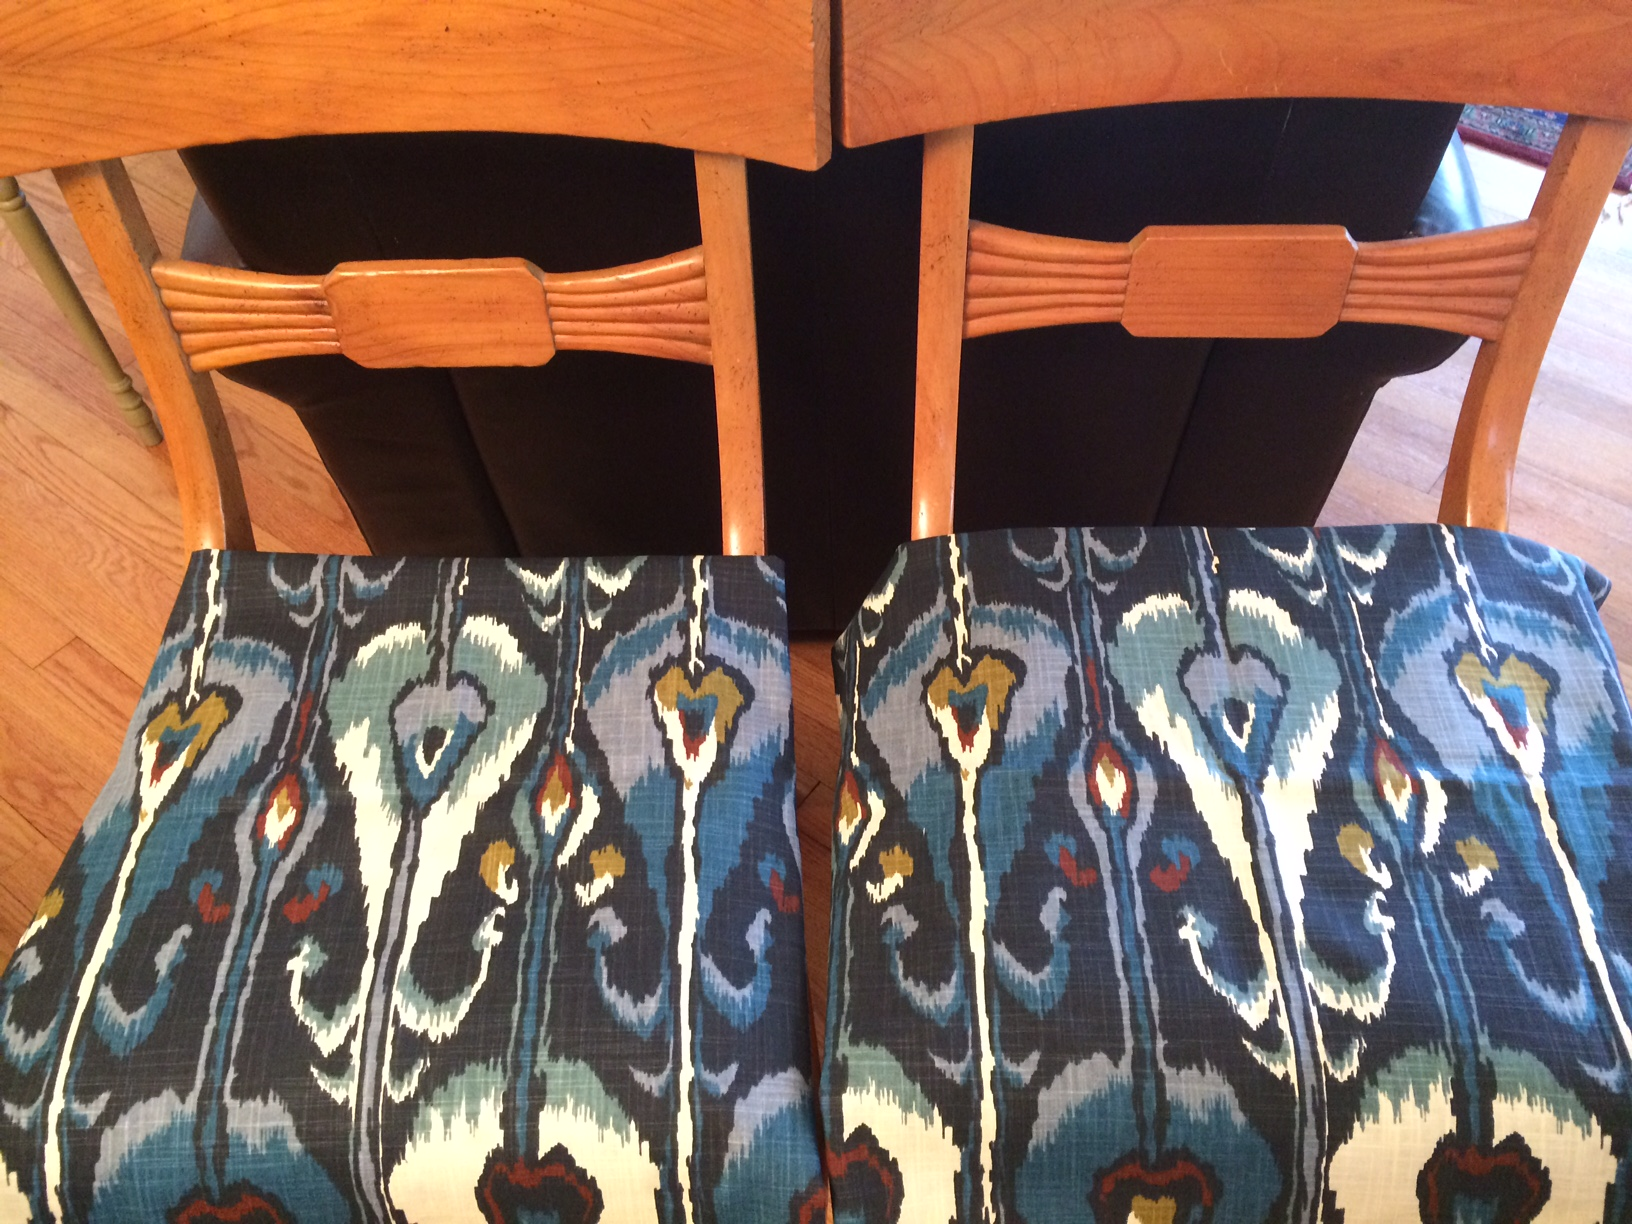 Fabic Patterns Match Chairs (2)